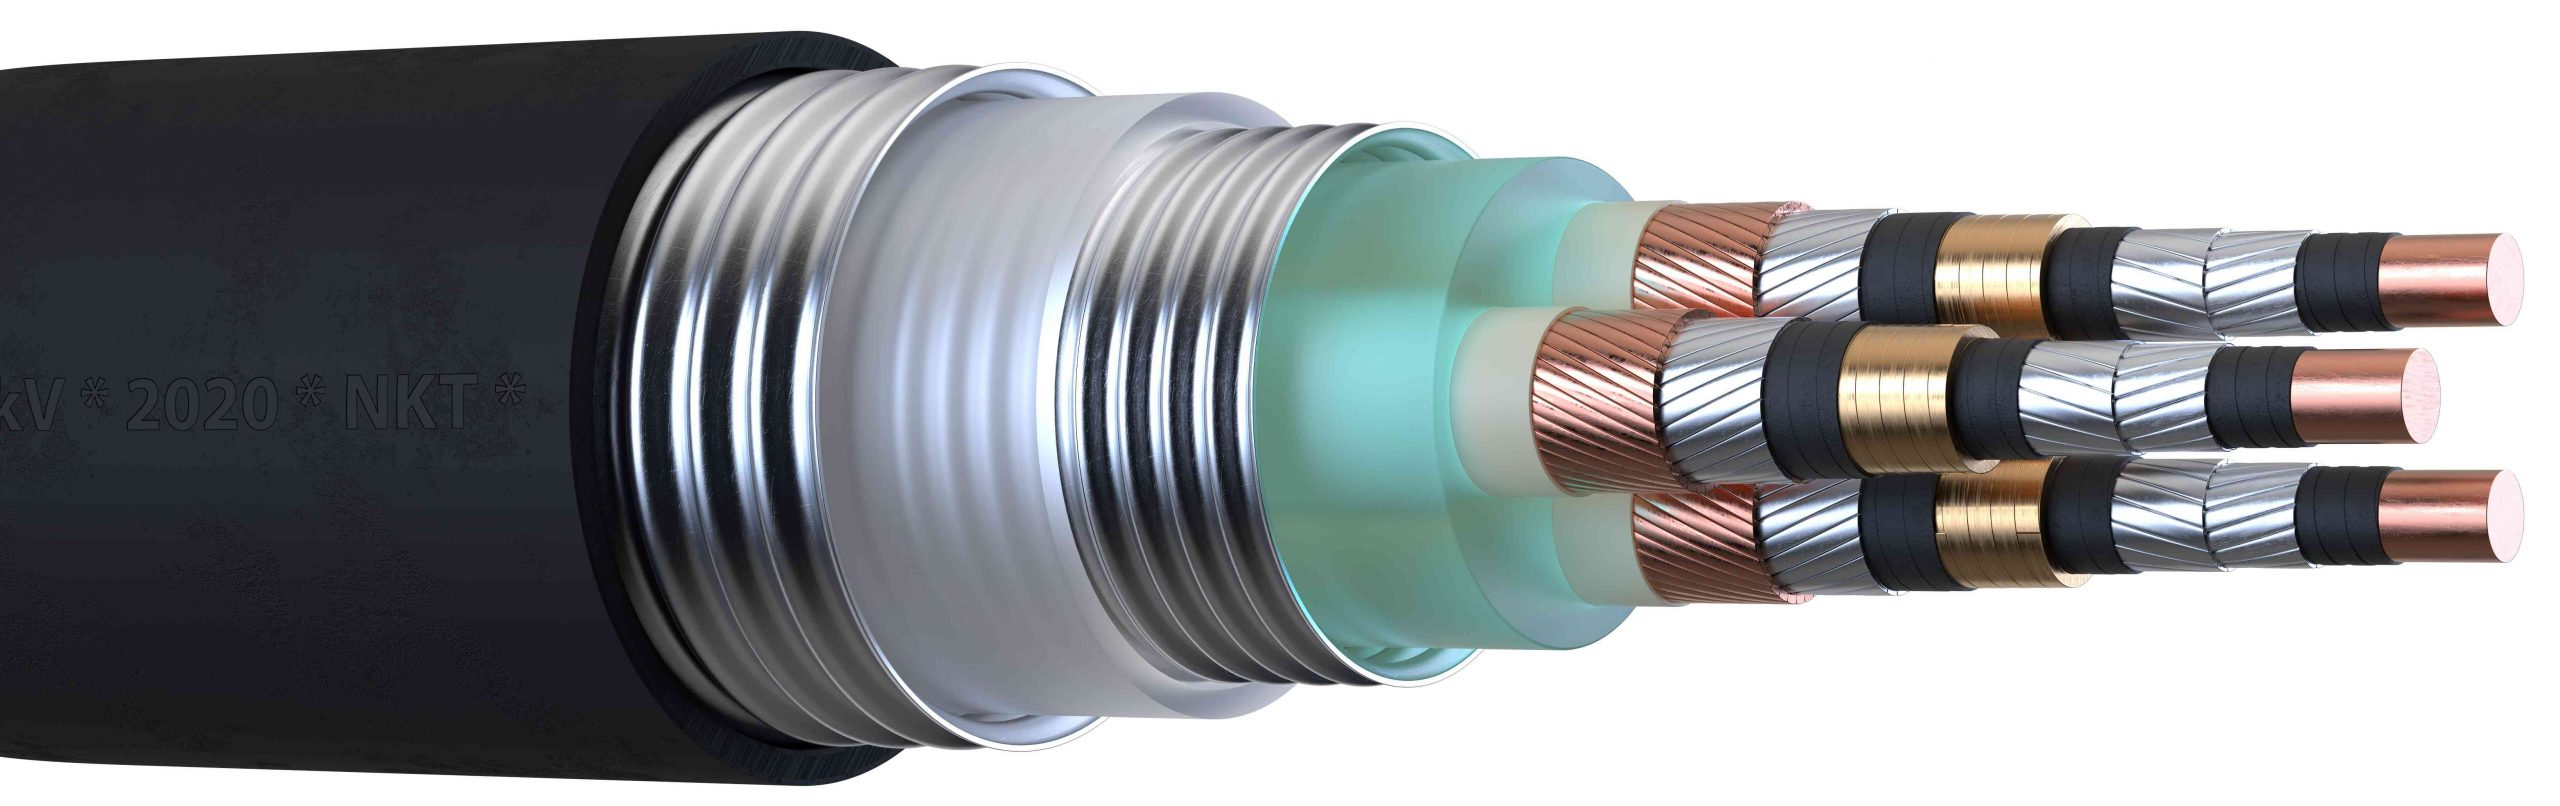 cable design for high voltage